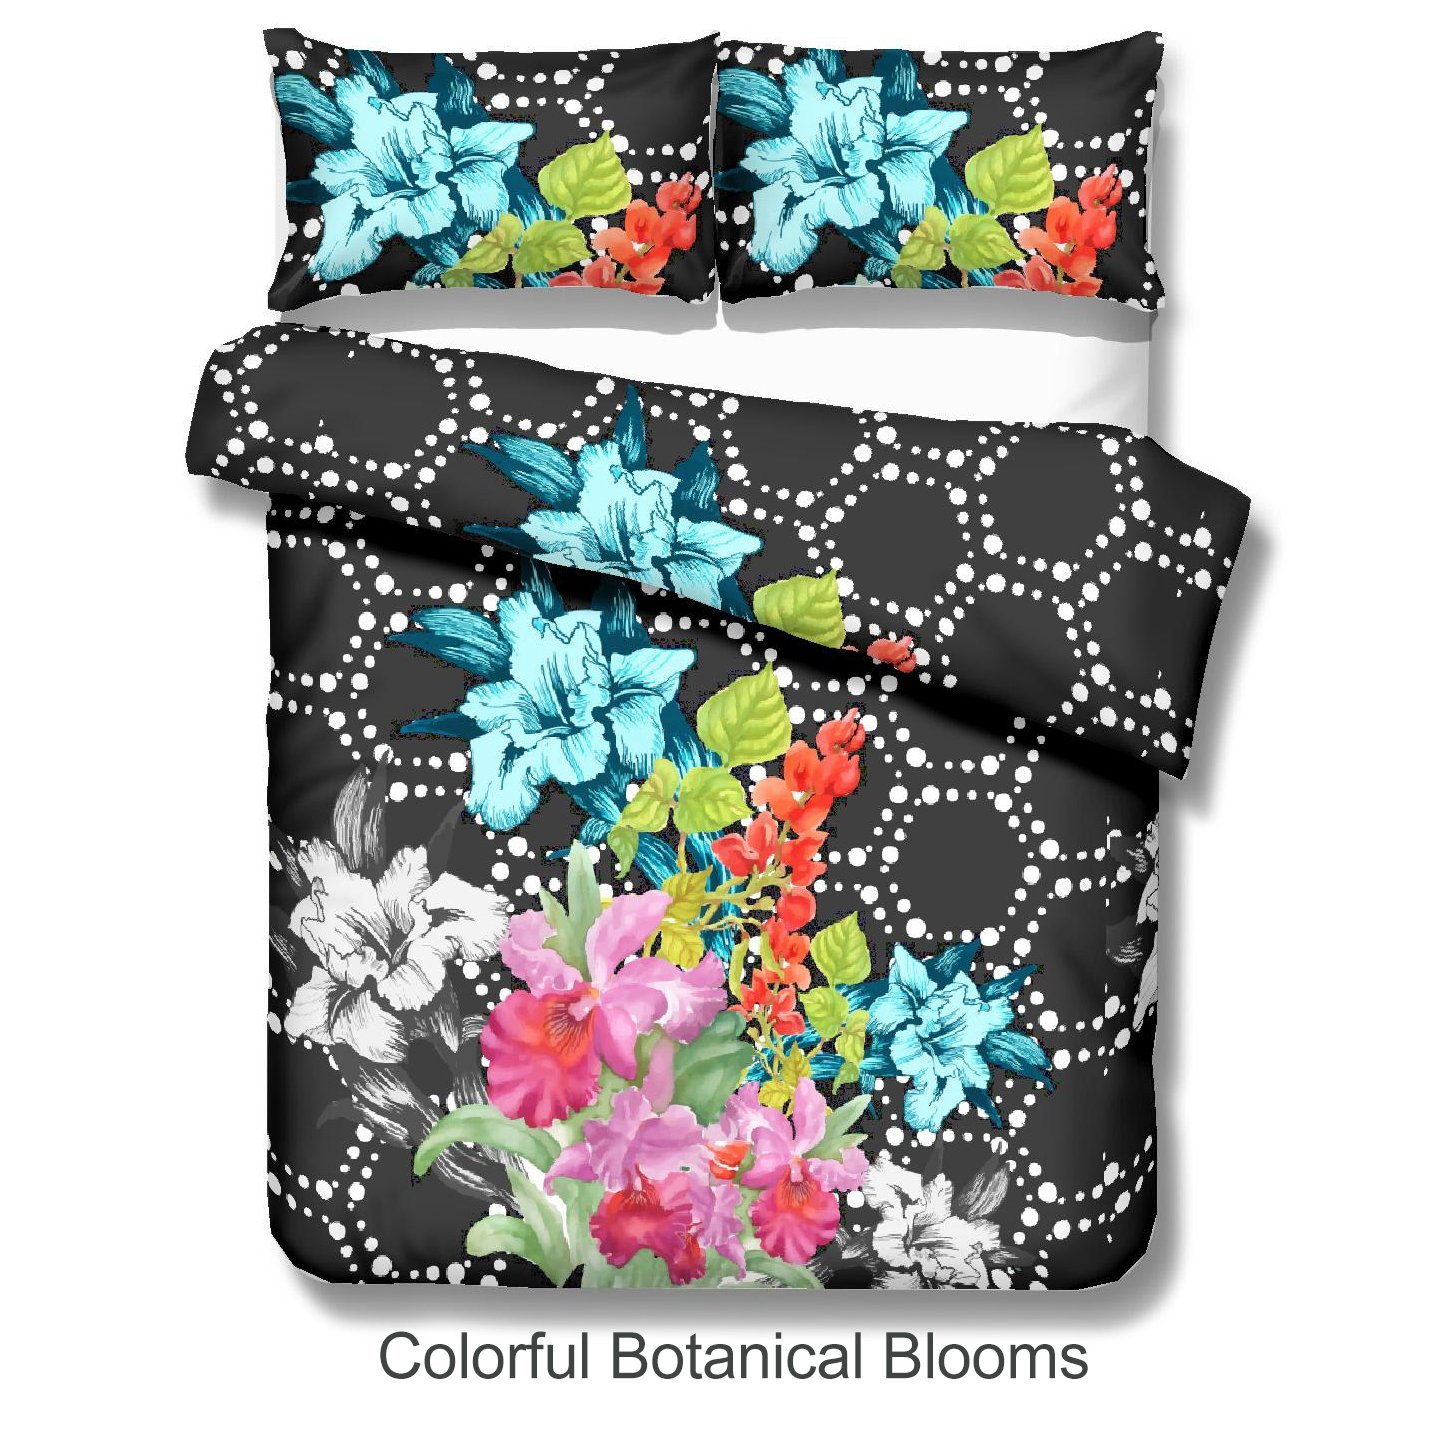 3 Pieces Elegant Watercolor Floral Pattern Duvet Cover Set Colorful Lilies and Rhododendrons Botanical Blooms Duvet Quilt Cover Twin